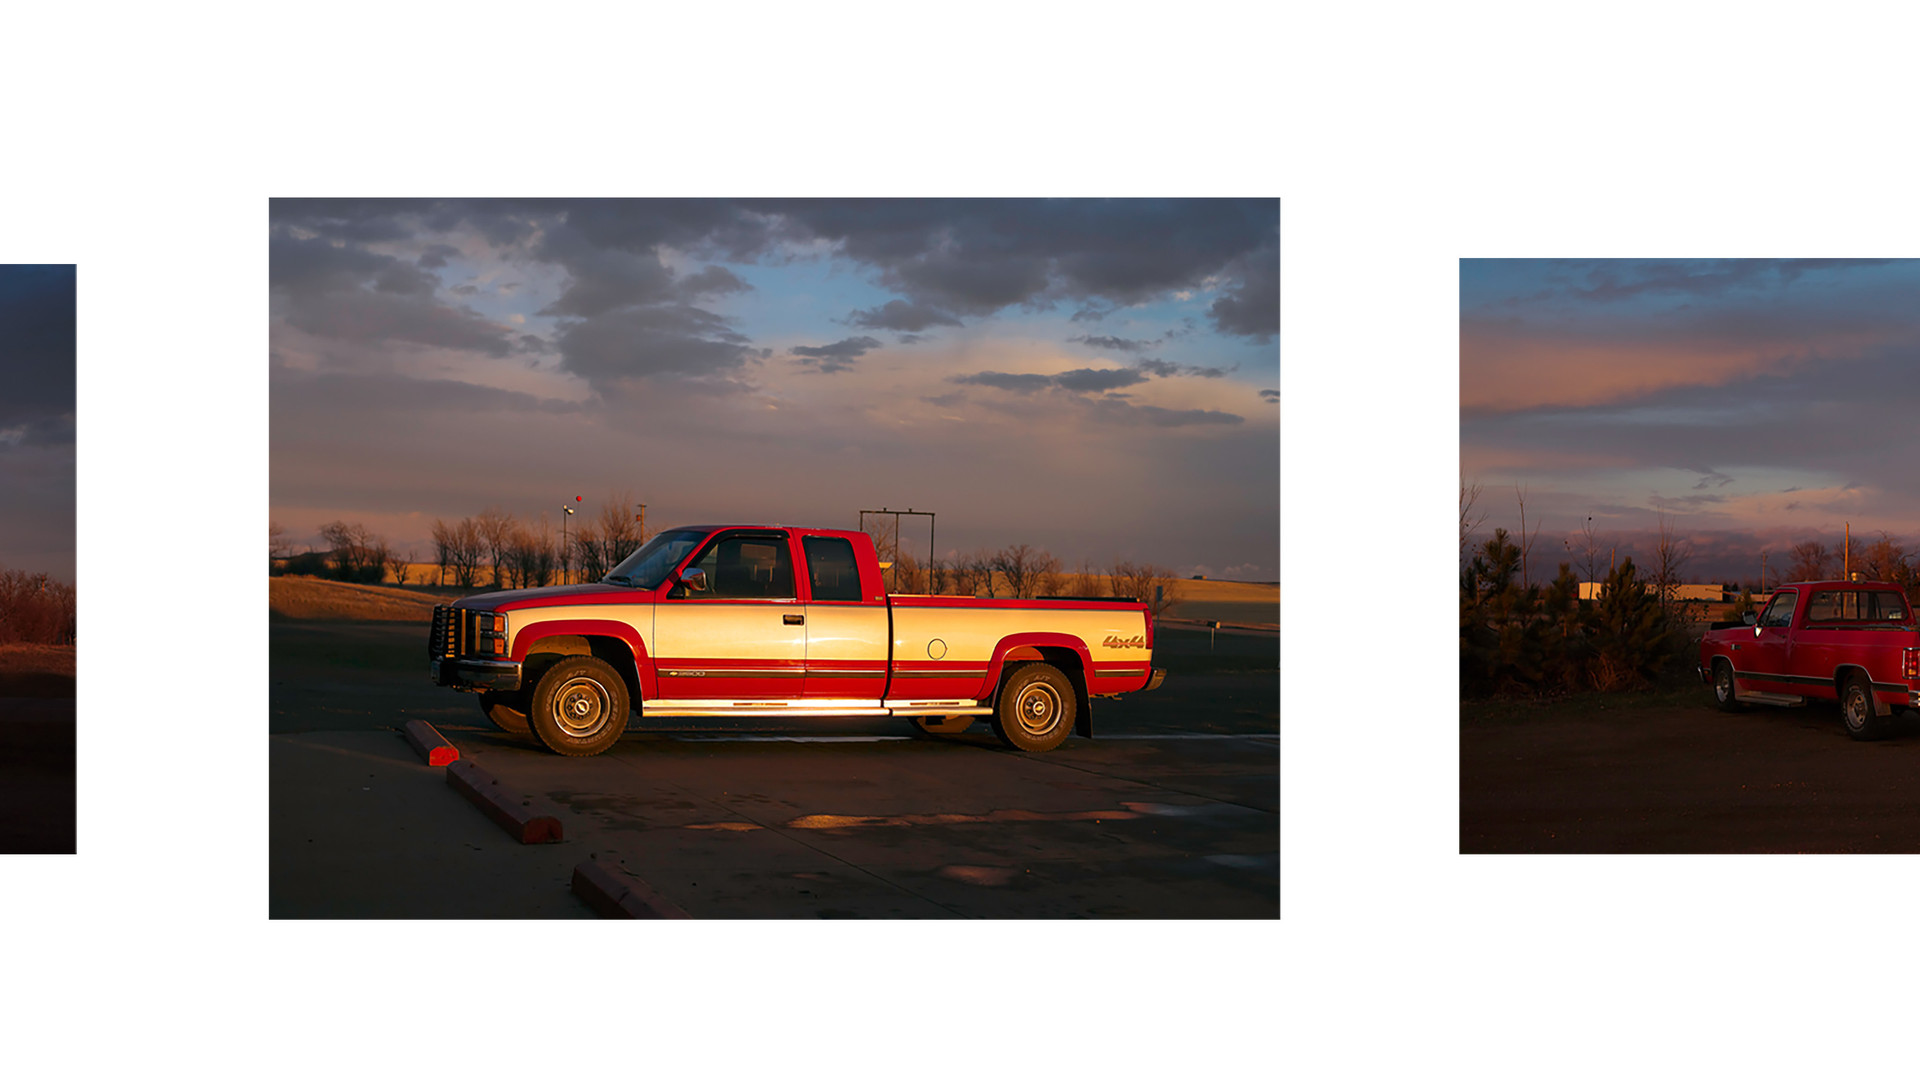 Paul Graham, North Dakota (Moonrise at Garage), 2005